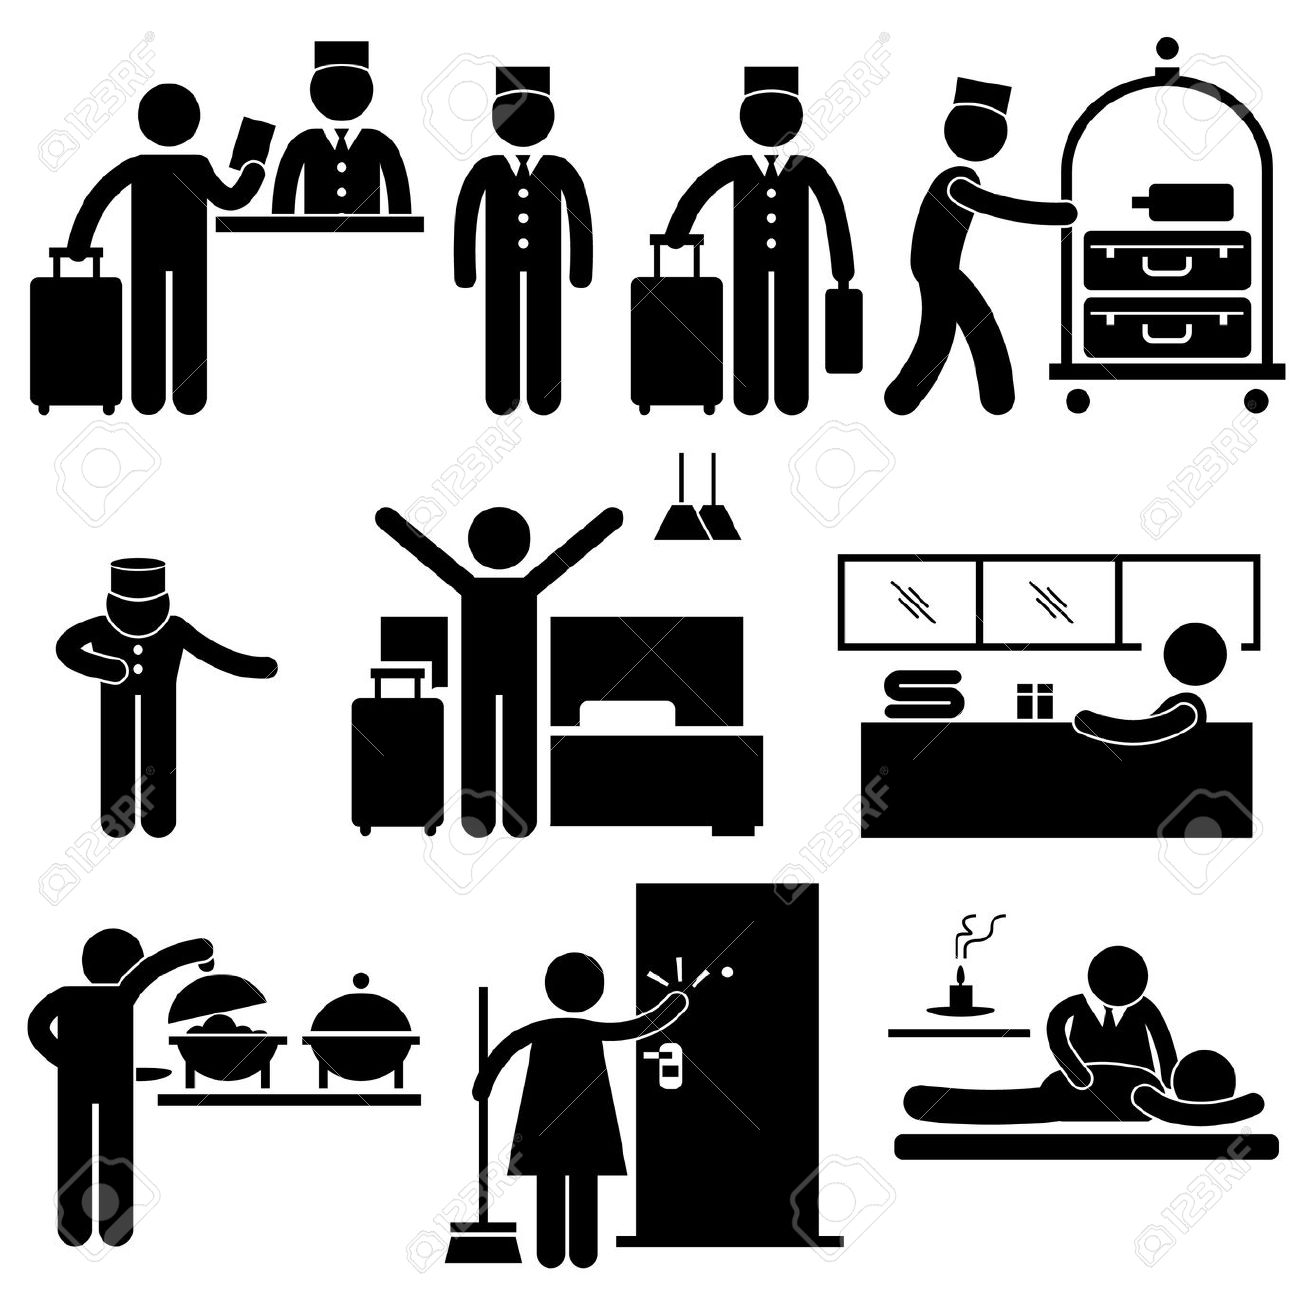 Hotel Industry Clipart.